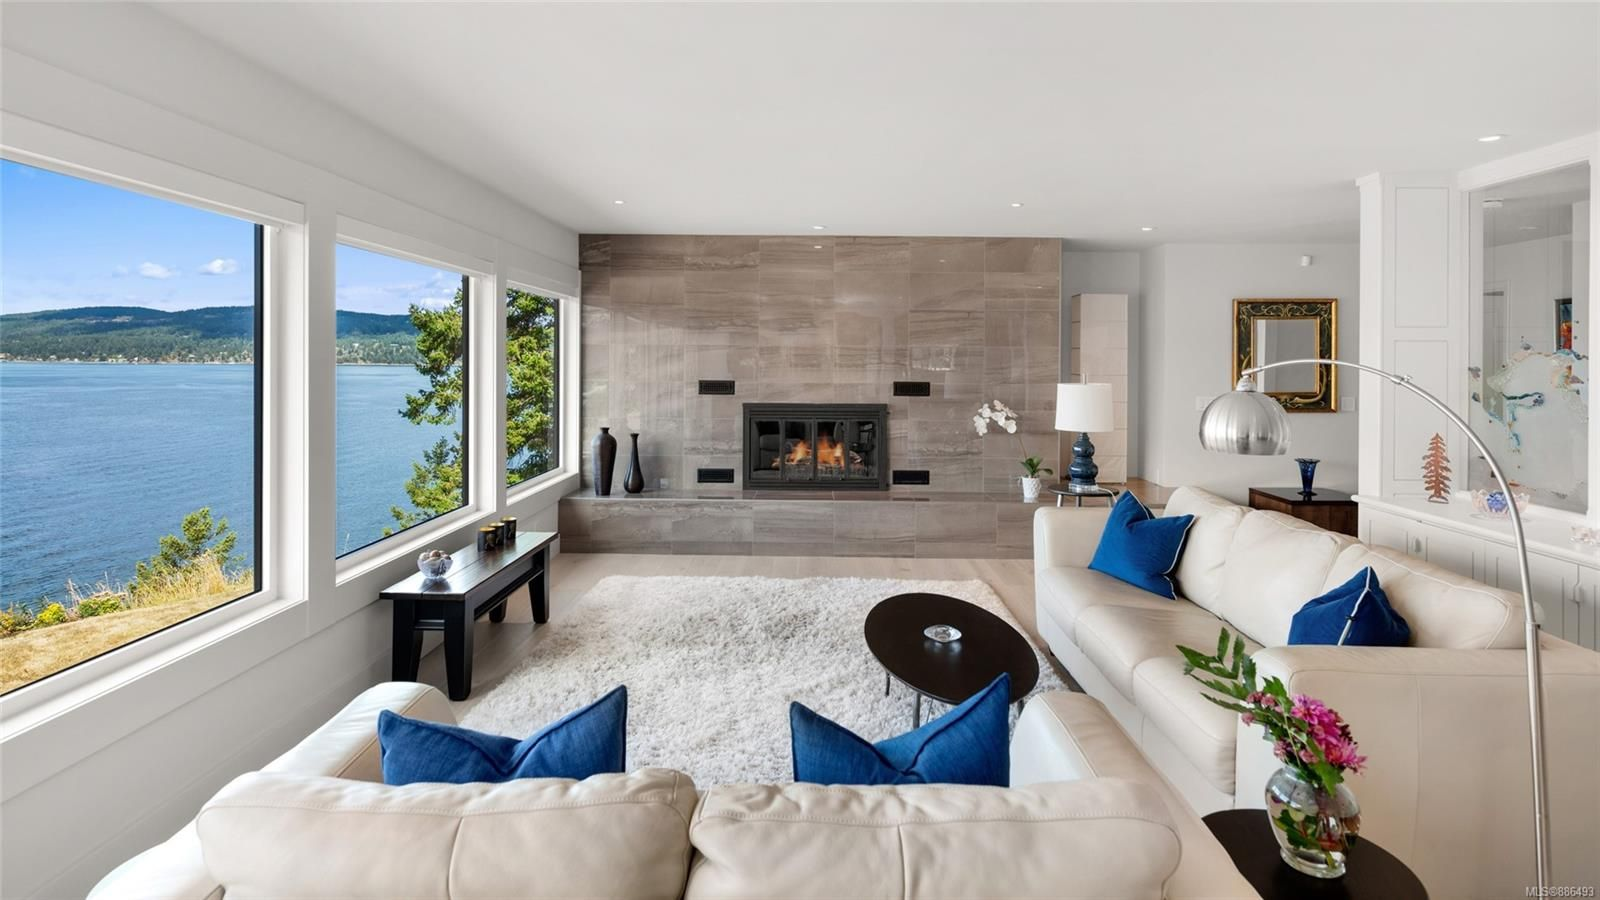 Main Photo: 160 Narrows West Rd in : GI Salt Spring House for sale (Gulf Islands)  : MLS®# 886493